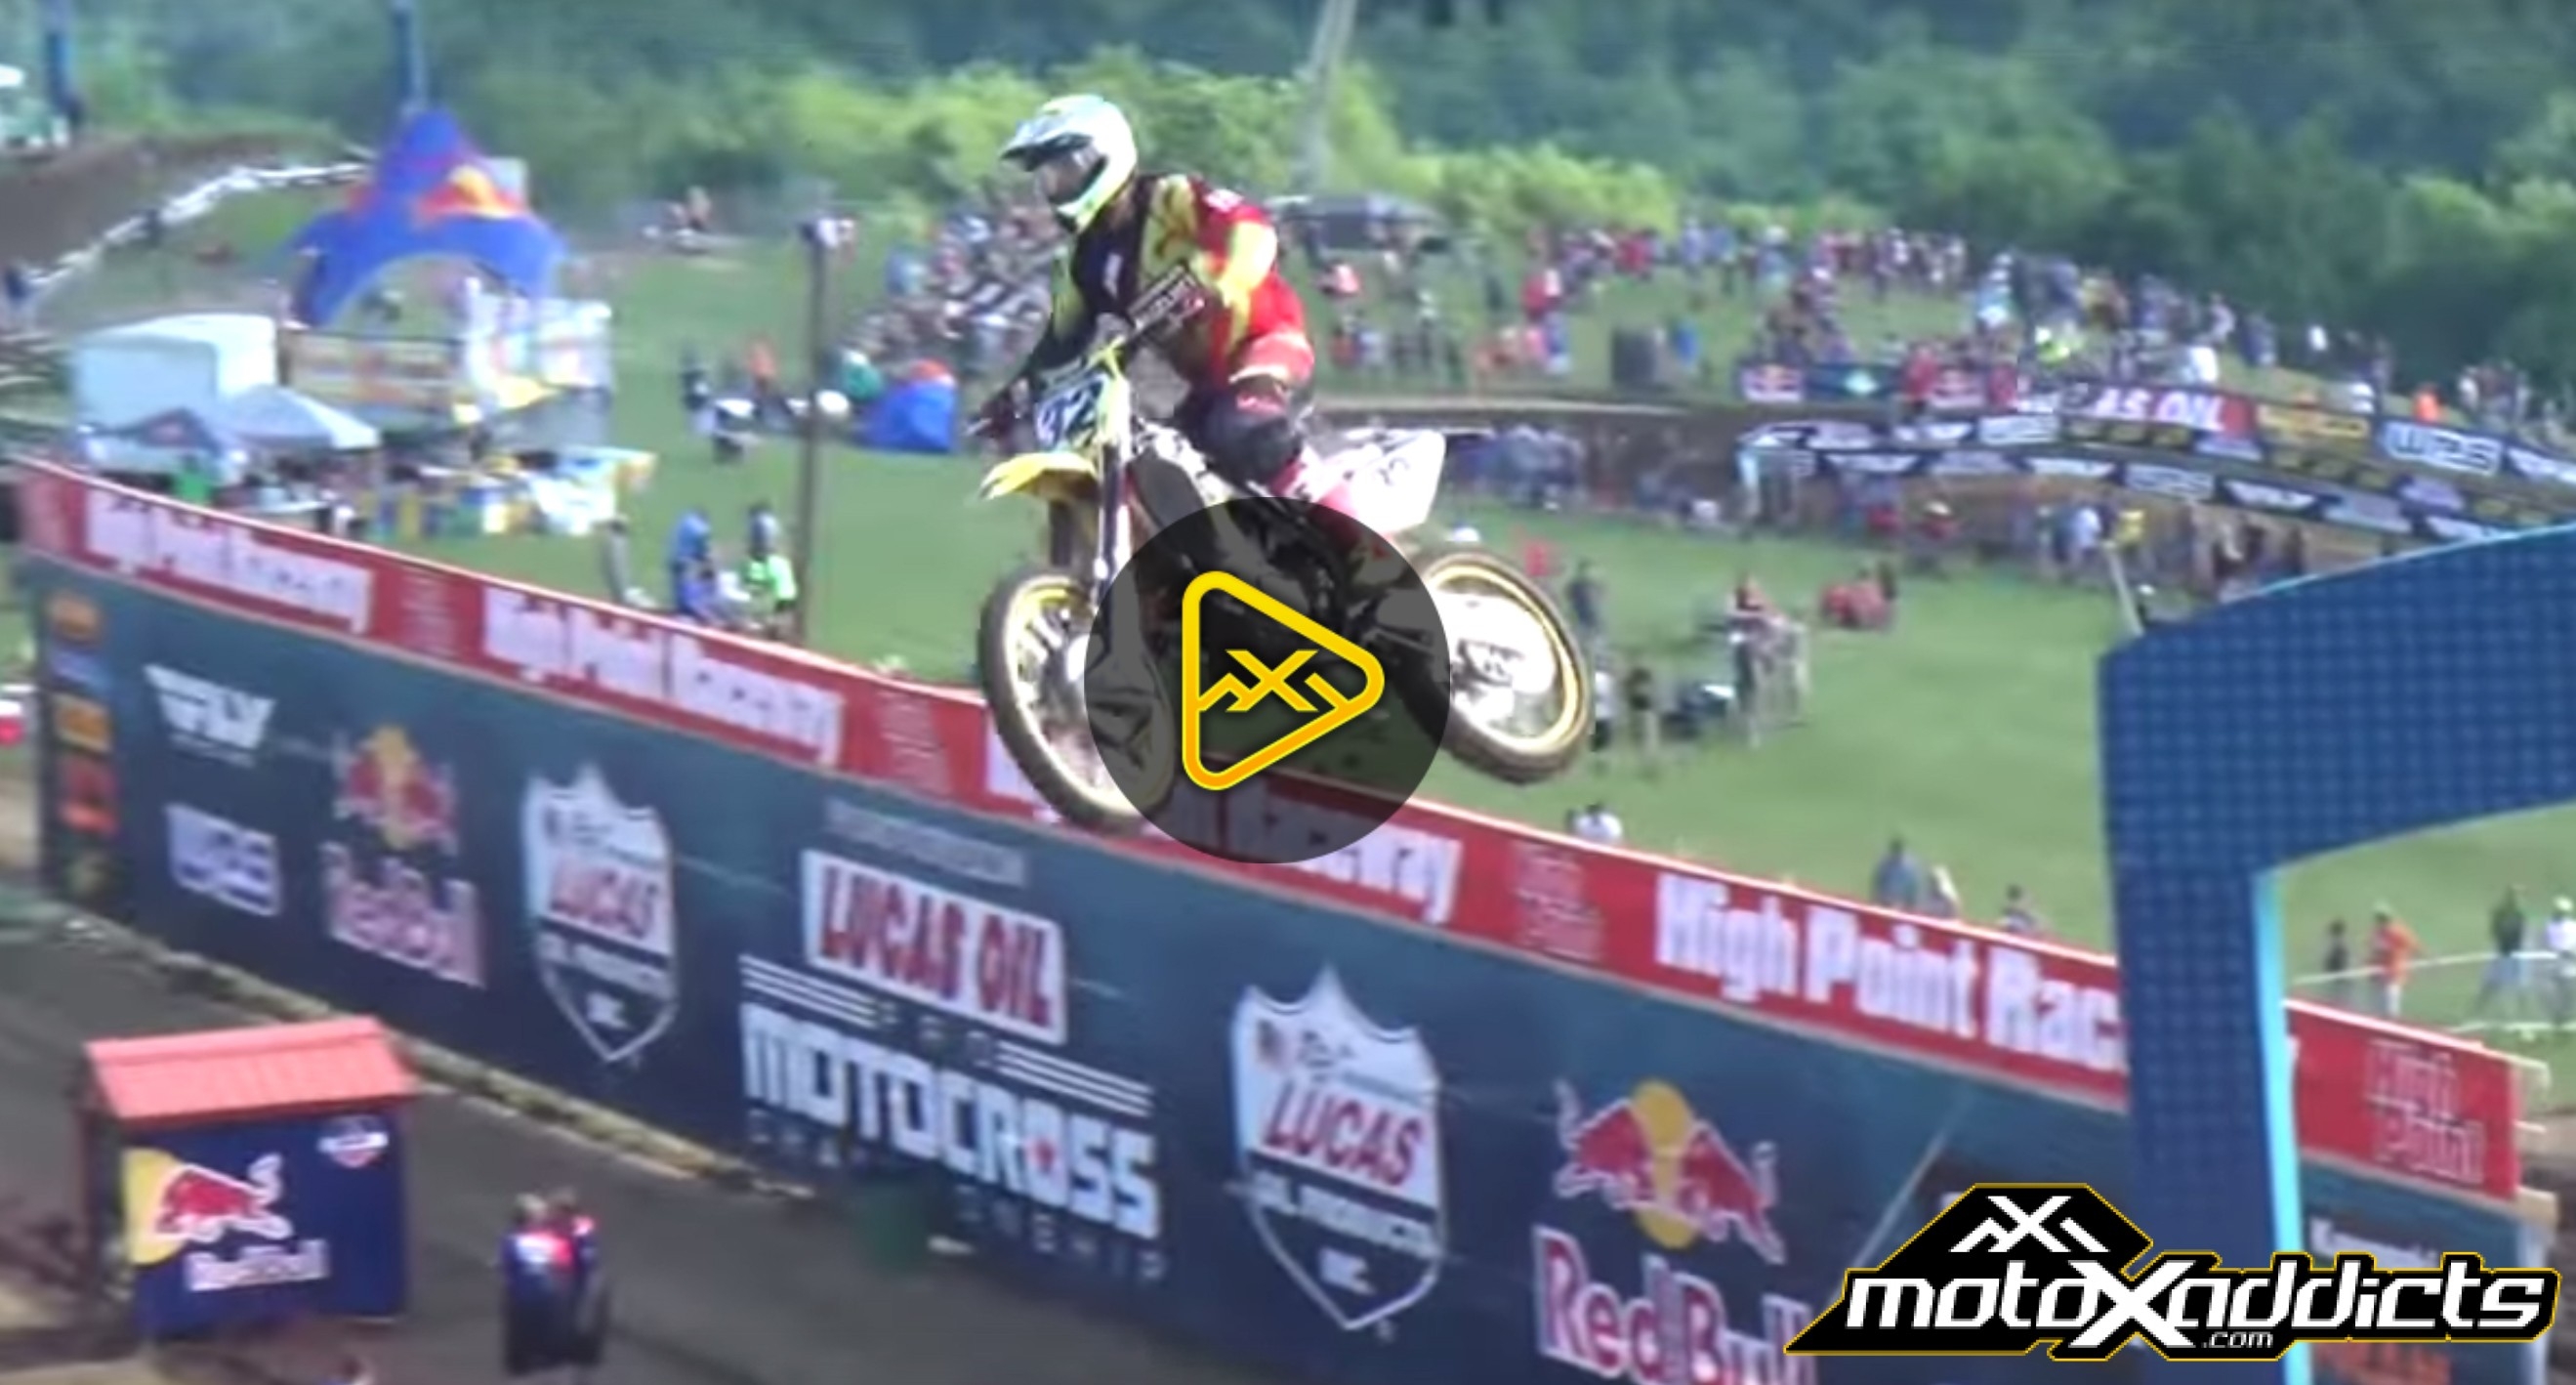 Behind the Scenes with Yoshimura Suzuki at 2016 High Point National